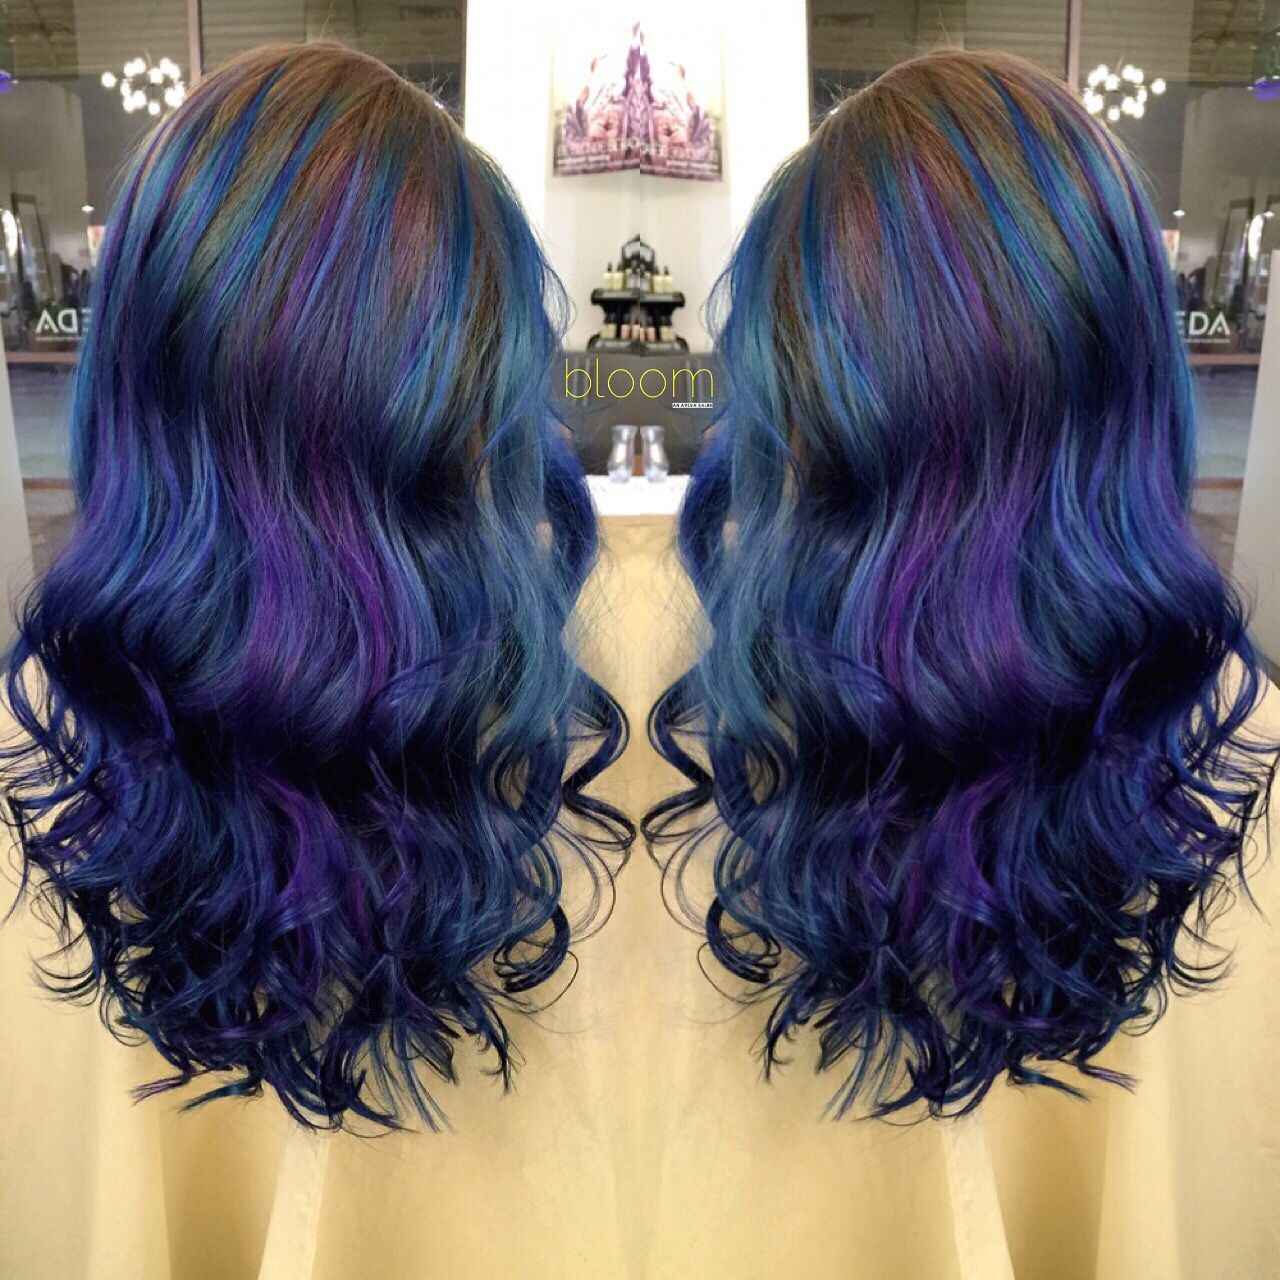 Violet and blue vivid hair color on long layered hair by bloom